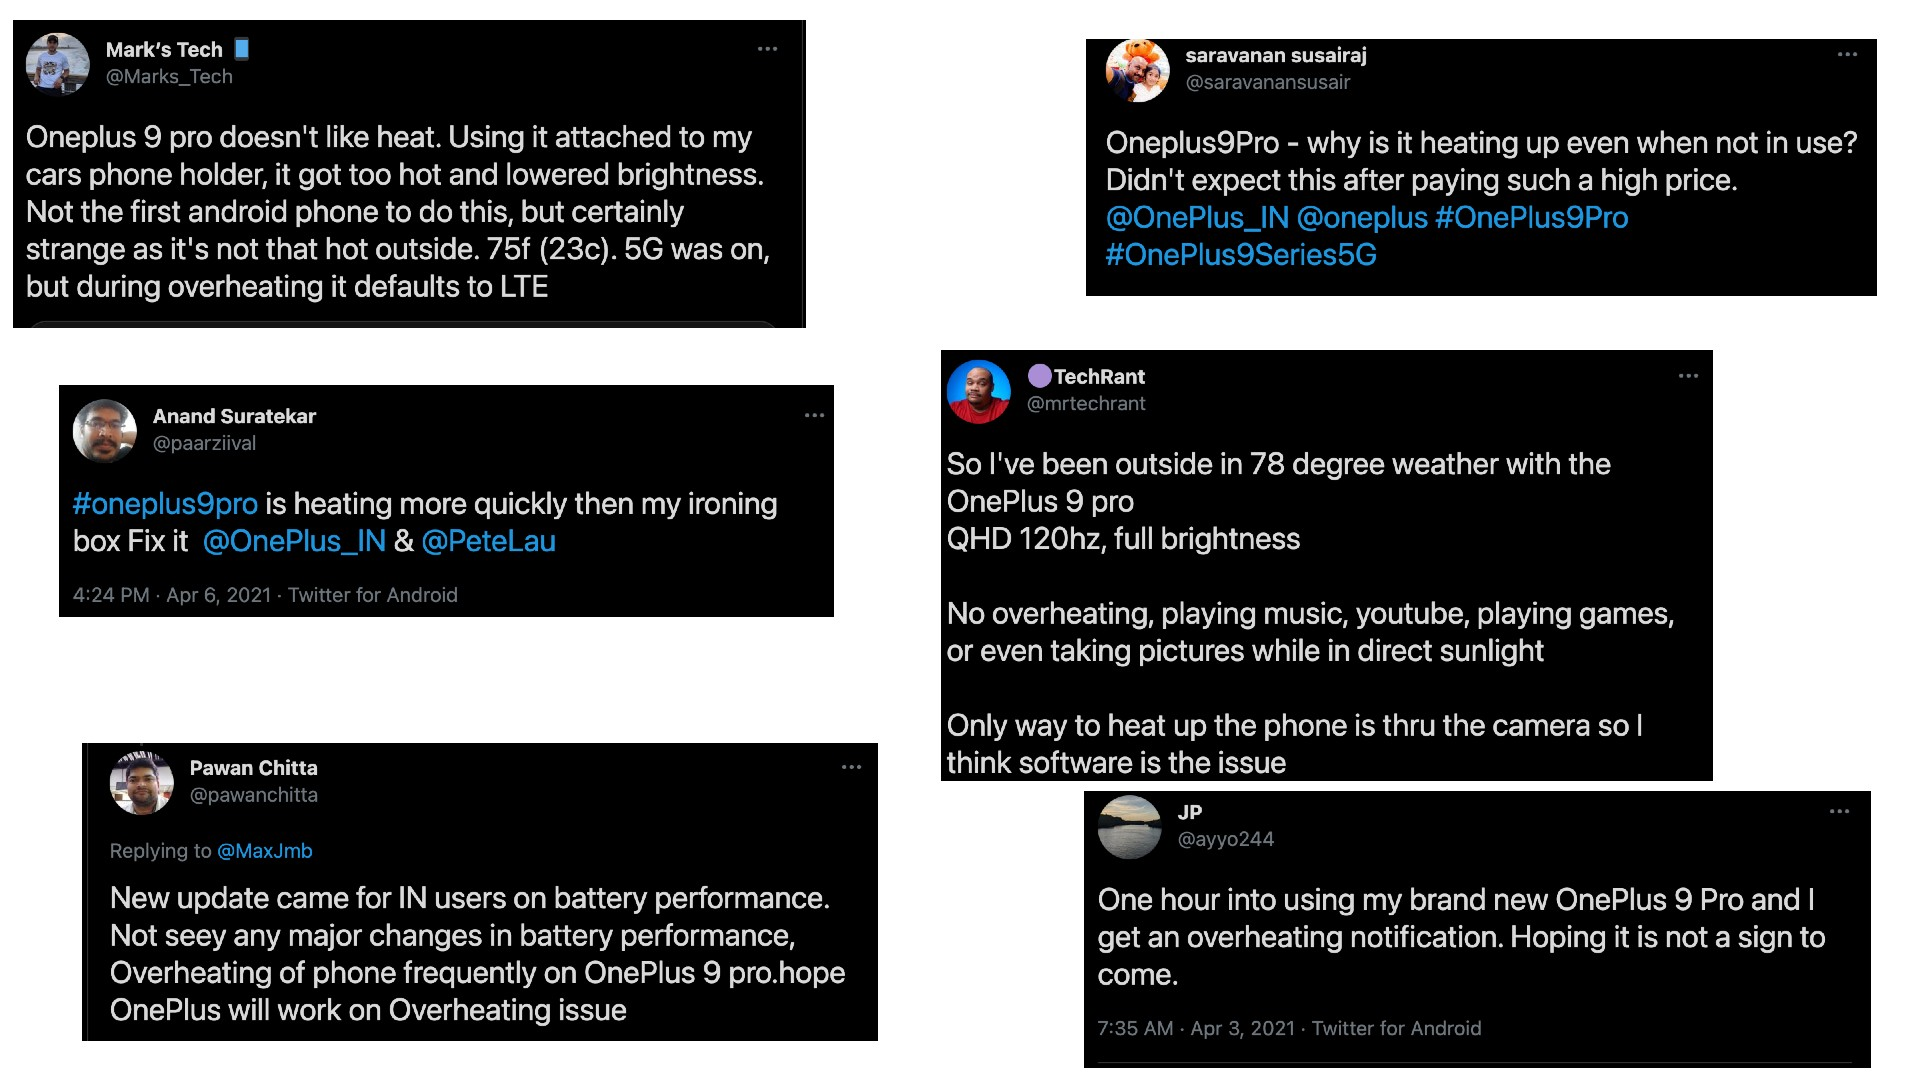 OnePlus 9 Pro overheating complaints from Twitter